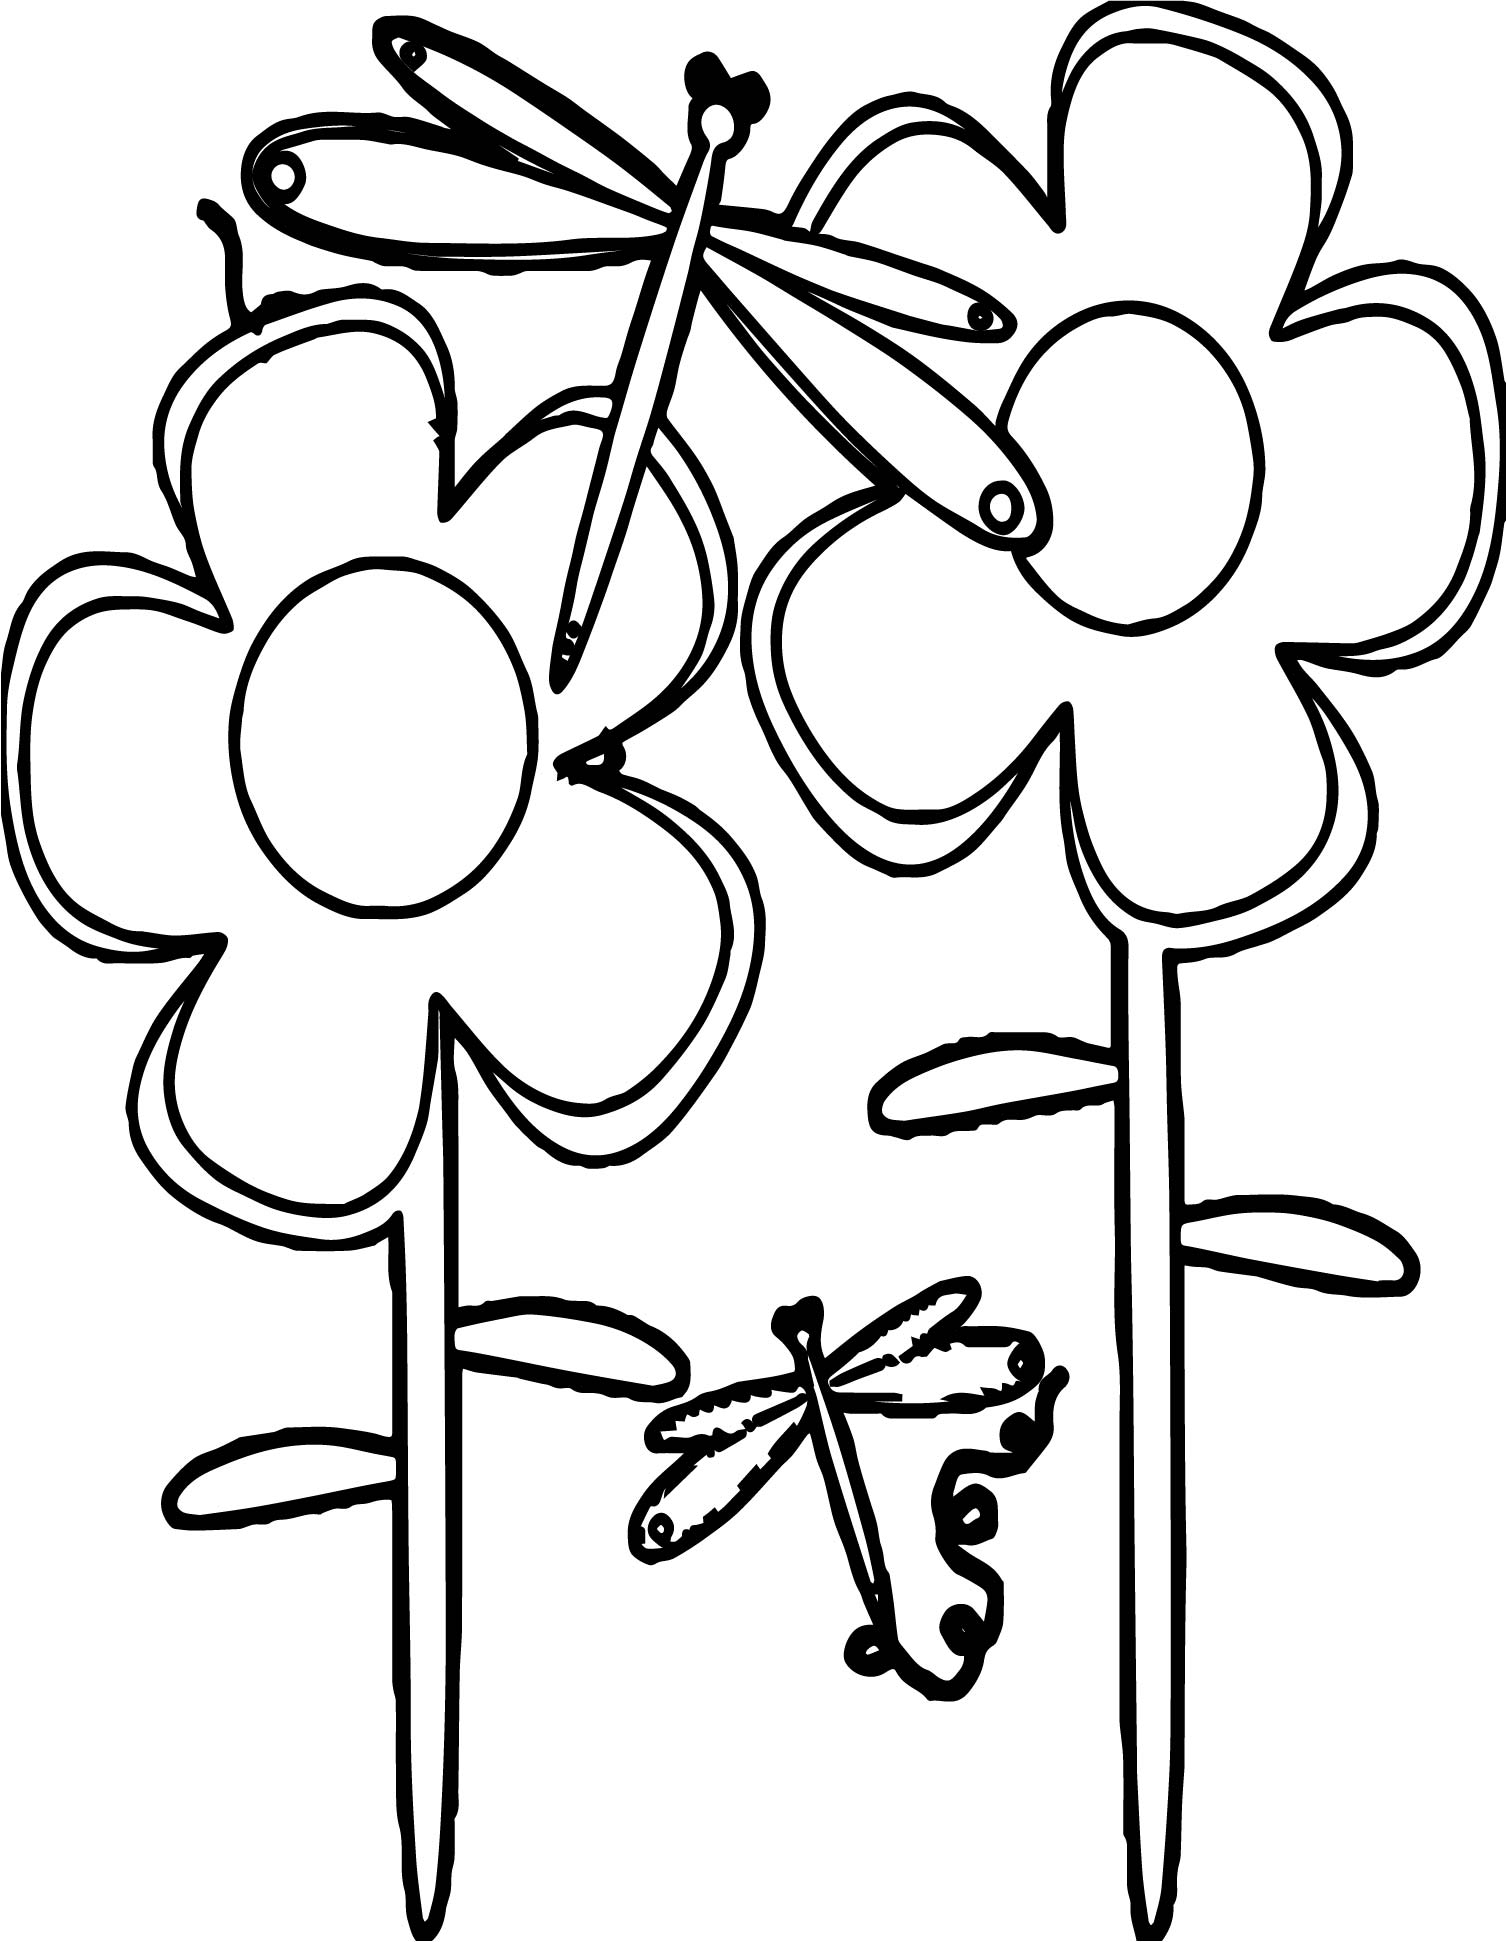 Spring Flowers Dragonfly Coloring Page | Wecoloringpage.com